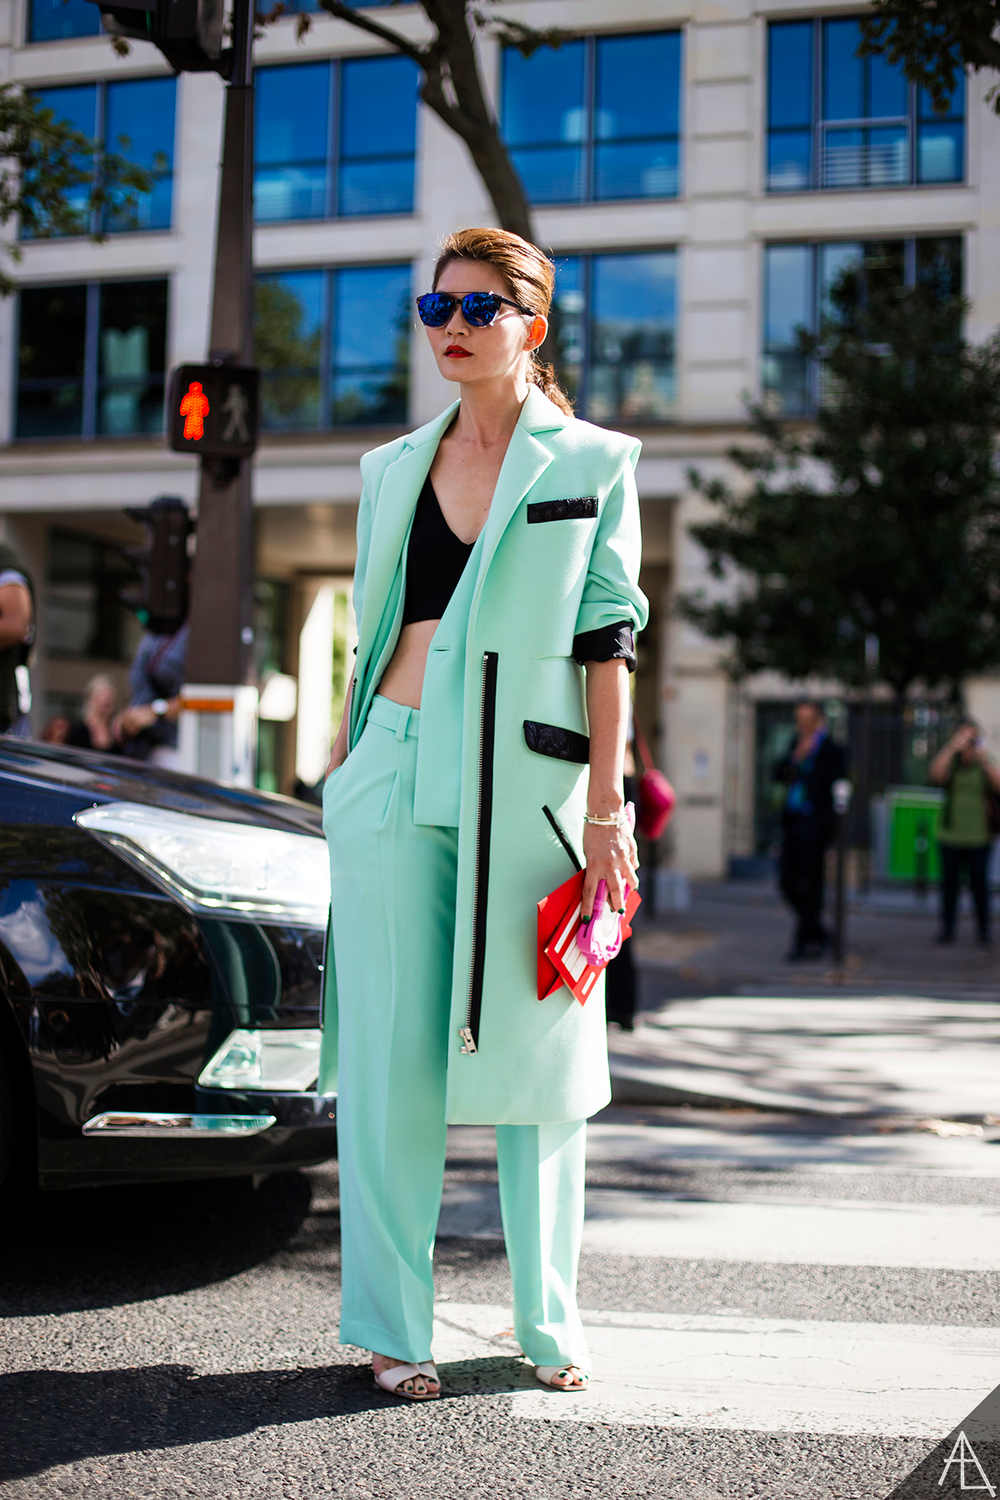 PFW-SS15-Miu-Miu-Louis-Vuitton-Street-Style-Ambitious-Looks-by-Ylenia-Cuellar-6-mint-suit.png